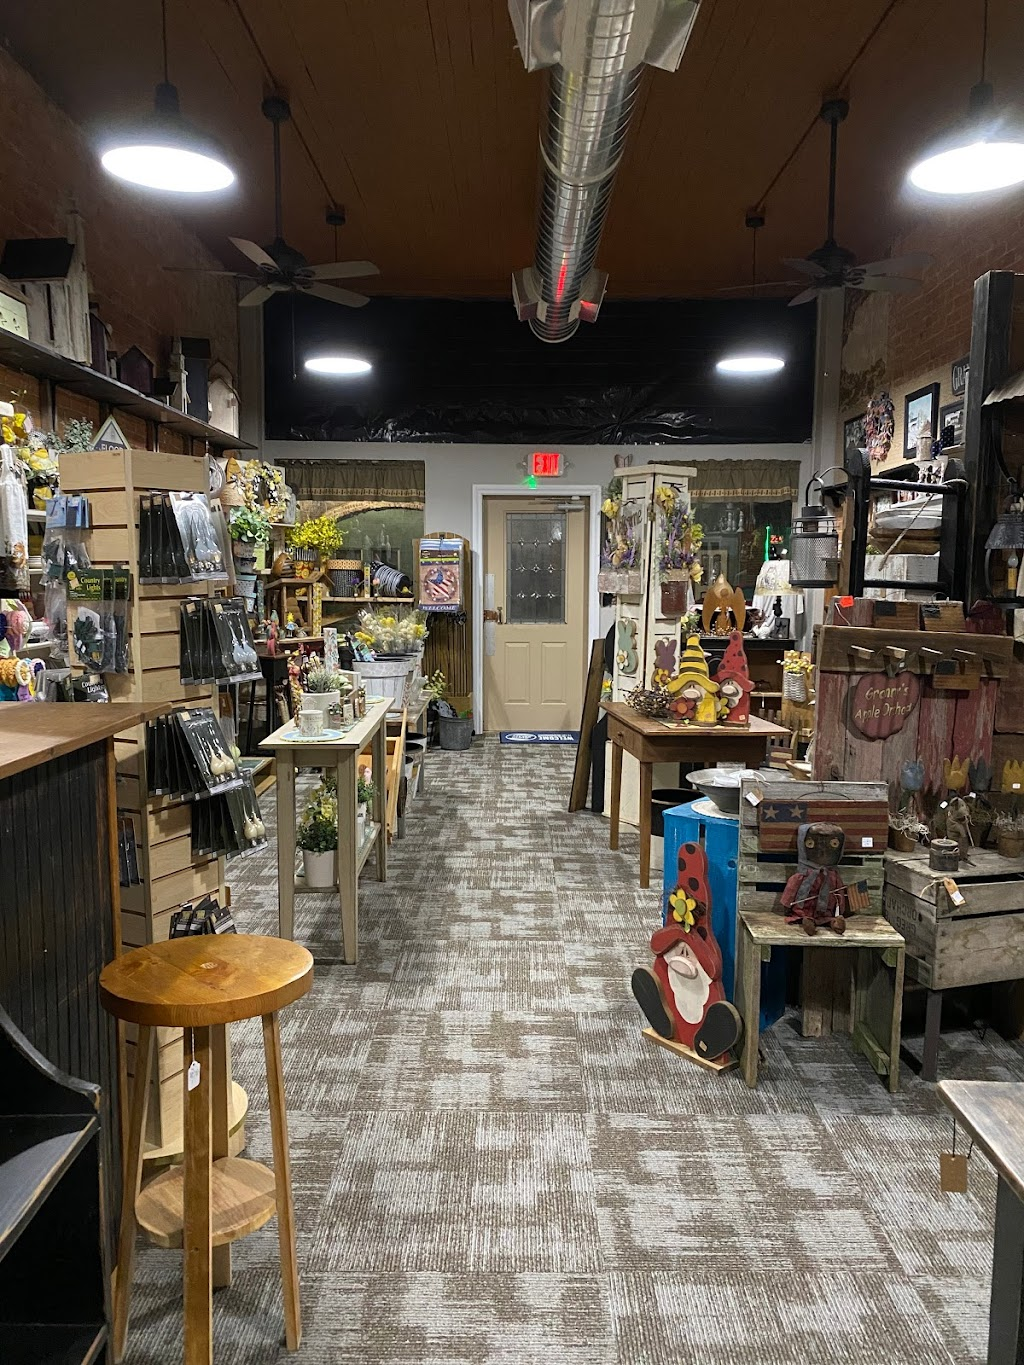 Country Cupboard Ohio - store  | Photo 6 of 10 | Address: 120 W Madison St, Gibsonburg, OH 43431, USA | Phone: (419) 287-0213